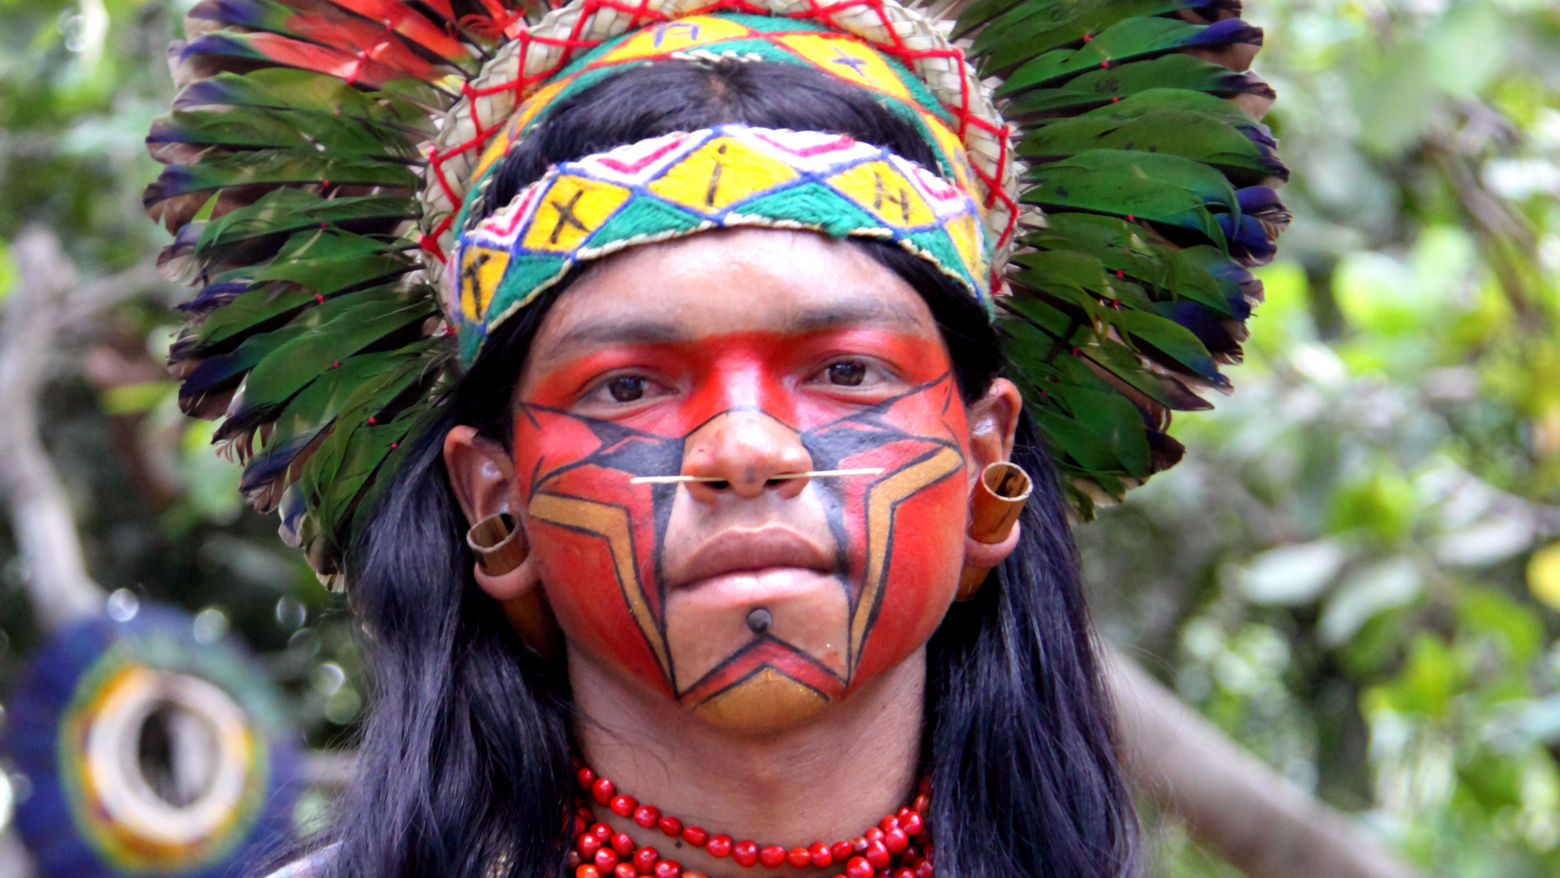 Member of the Pataxó tribe from South America, Bahia province, Brasil